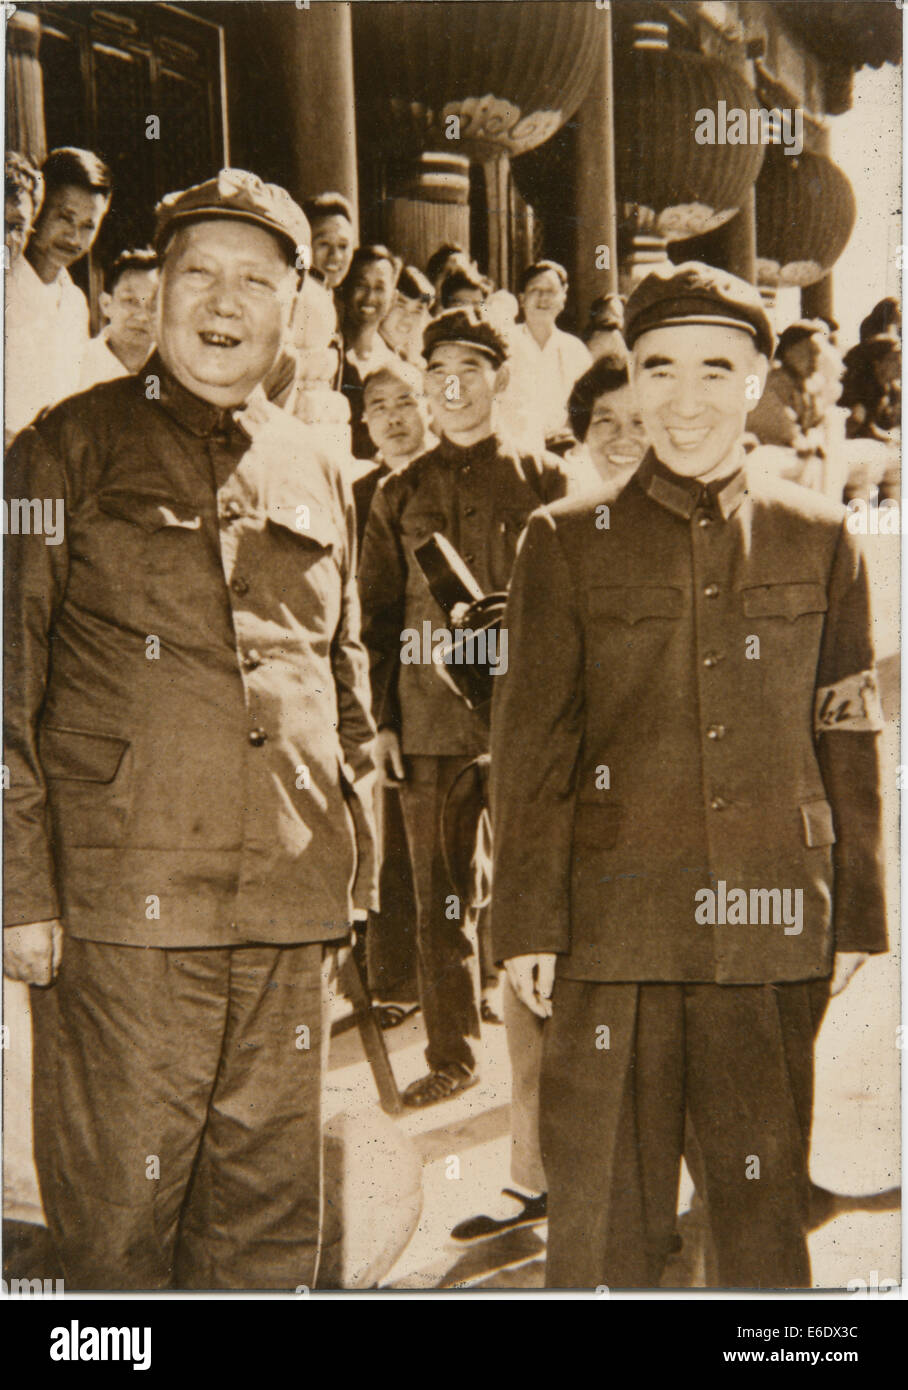 Chairman Mao Zedong and Premier Zhoe Enlai, People's Republic of China, Portrait, 1949 - Stock Image